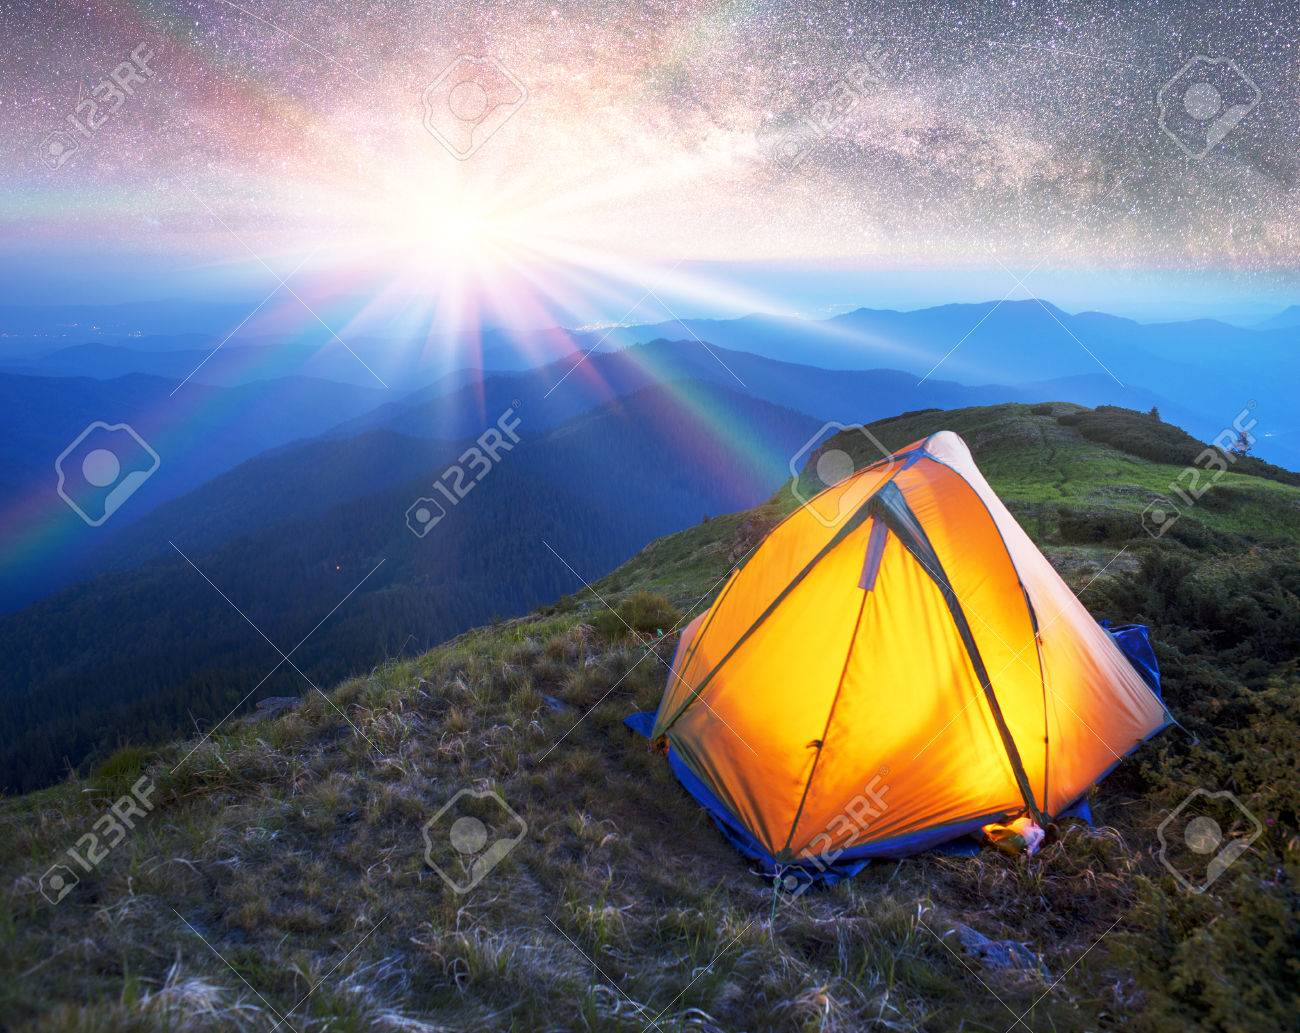 Tent mountaineering climbers among fantastically beautiful scenery on the background of an alpine wilderness of the & Tent Mountaineering Climbers Among Fantastically Beautiful Scenery ...